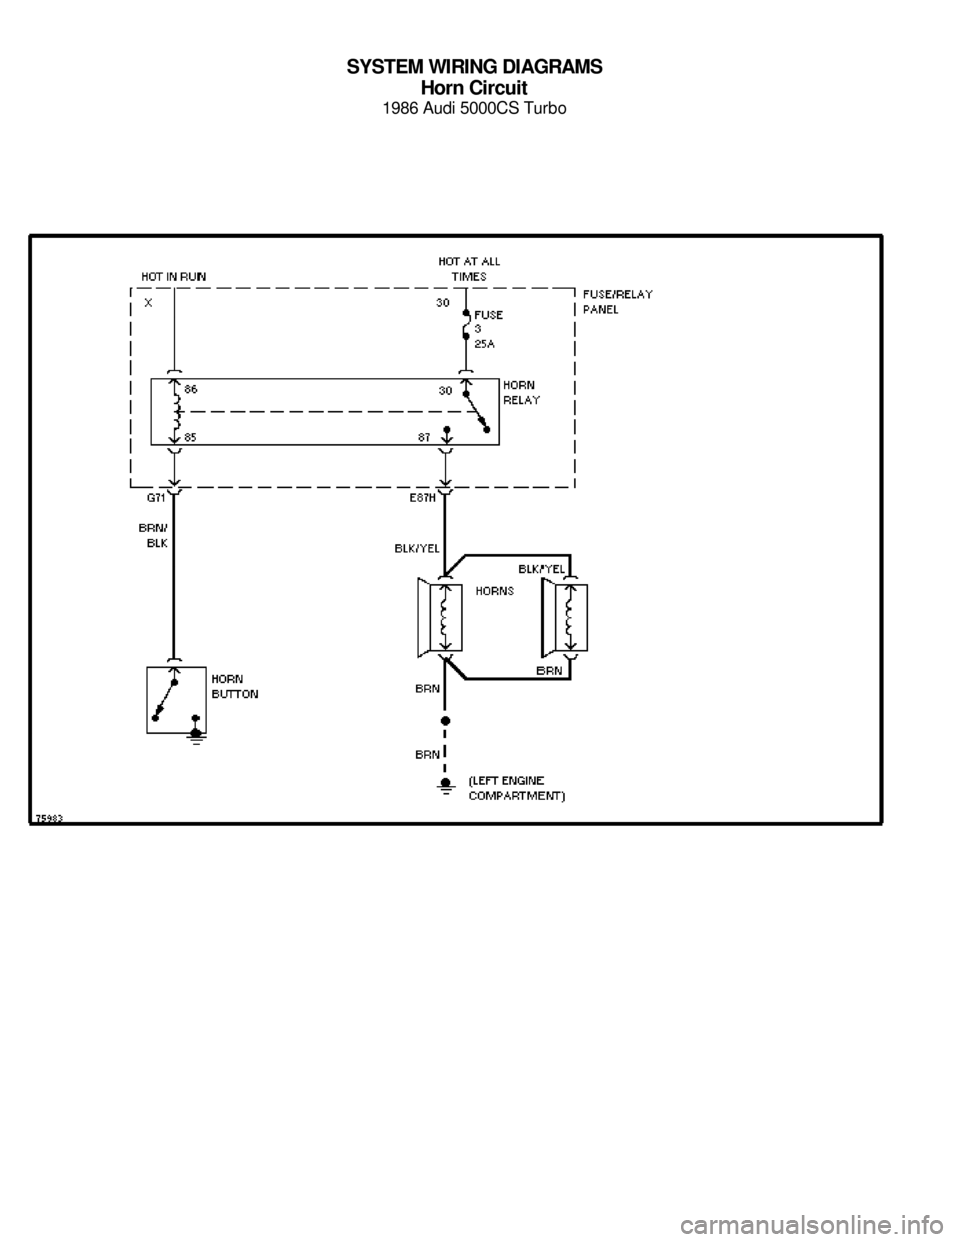 AUDI 5000CS 1986 C2 System Wiring Diagram SYSTEM WIRING DIAGRAMS Horn Circuit 1986 Audi 5000CS Turbo For x     Copyright © 1998 Mitchell Repair Information Company, LLCMonday, July 19, 2004  05:52PM